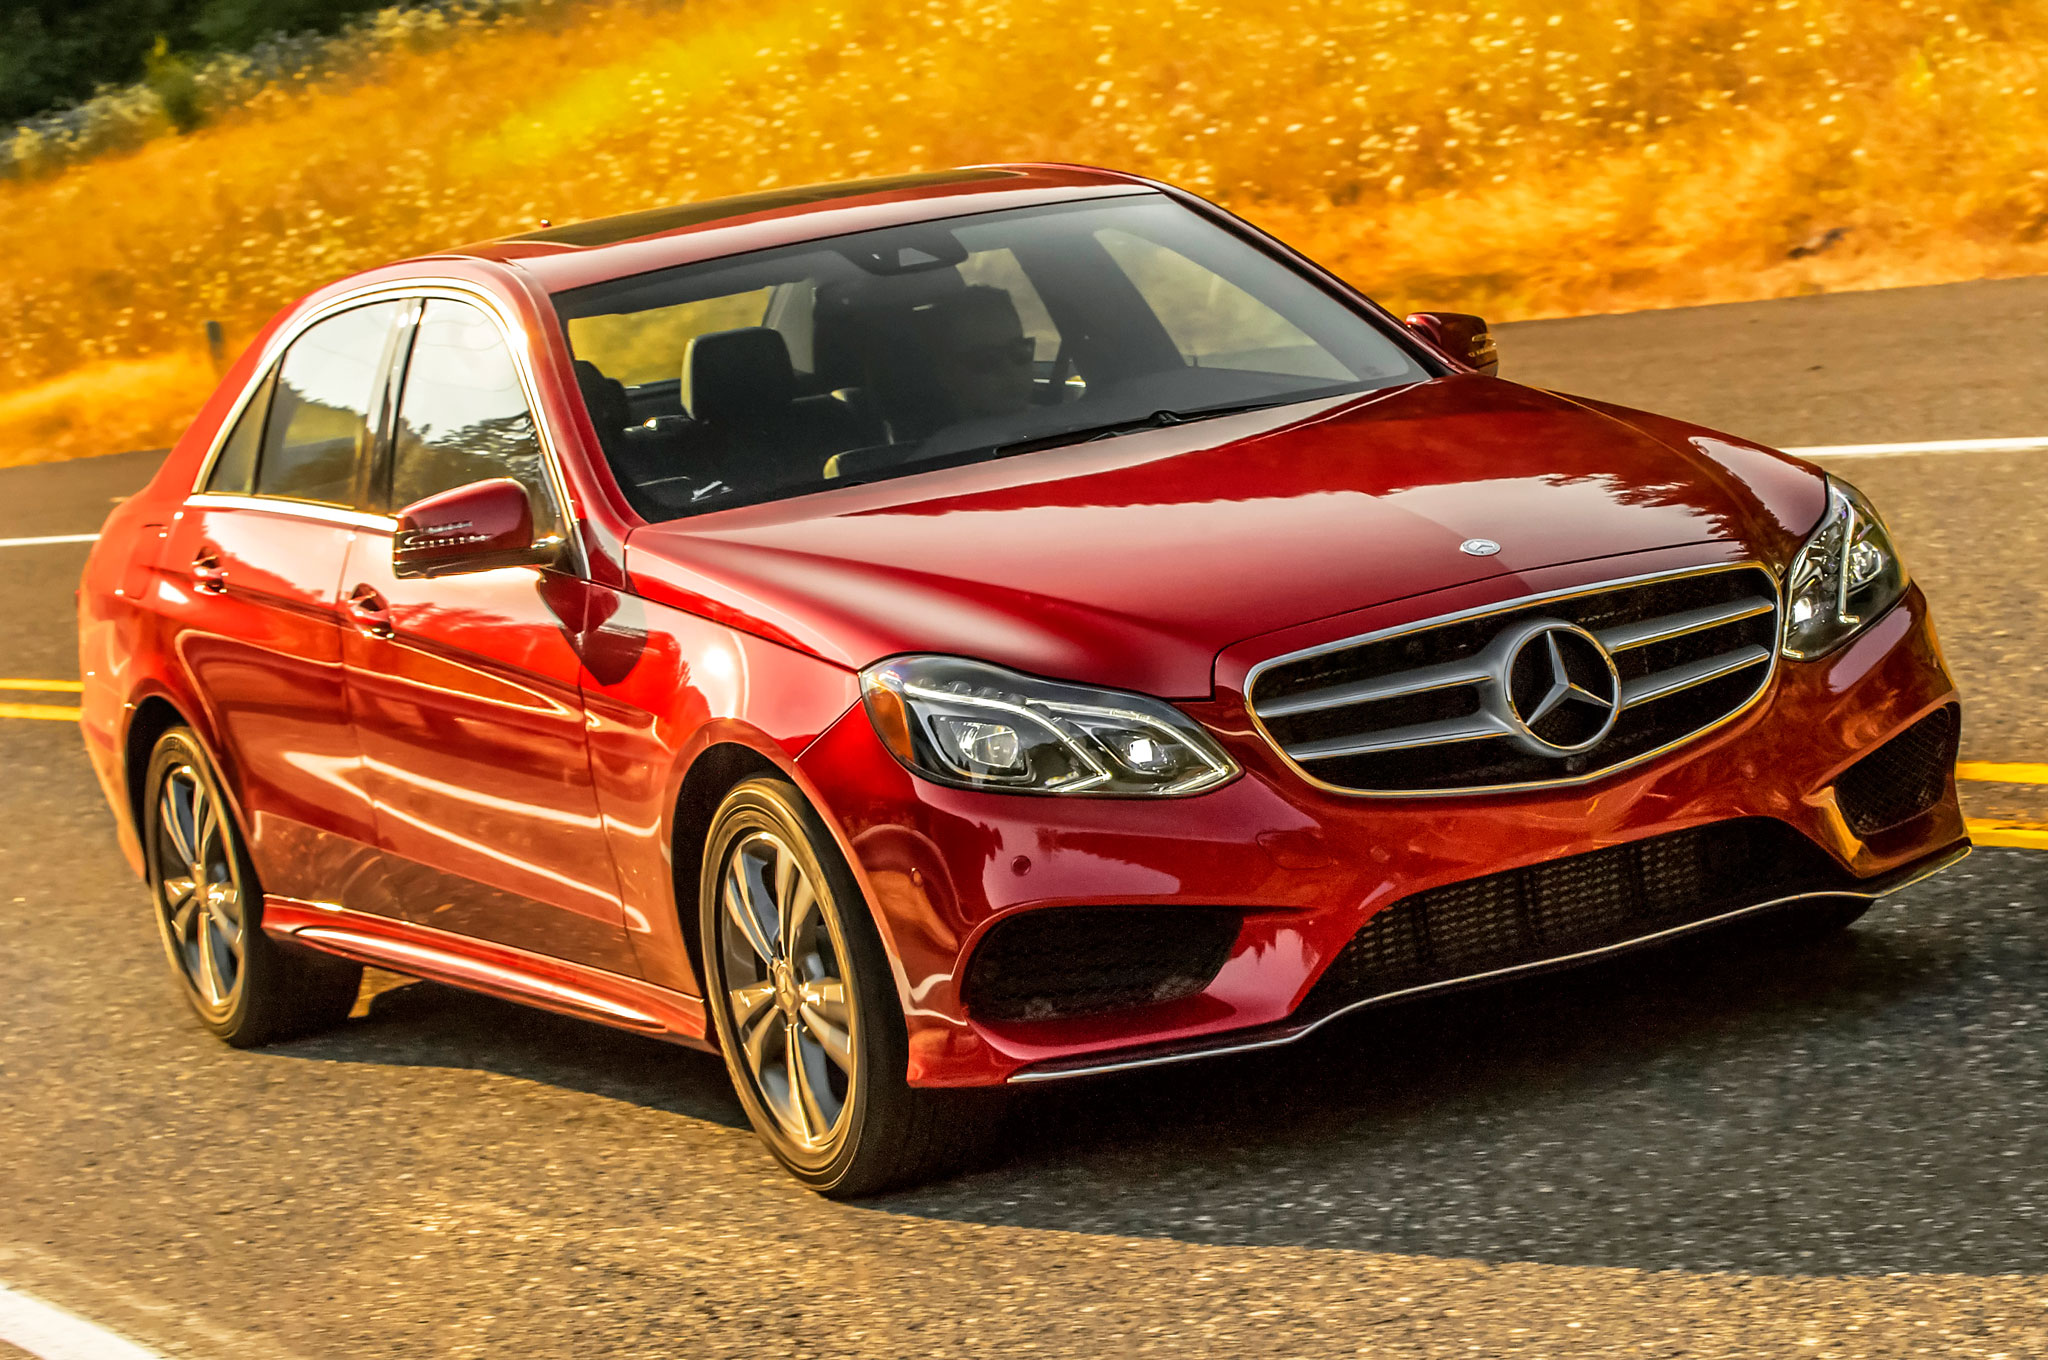 2014 Mercedes Benz E250 Bluetec Diesel Rated at 45 MPG Highway